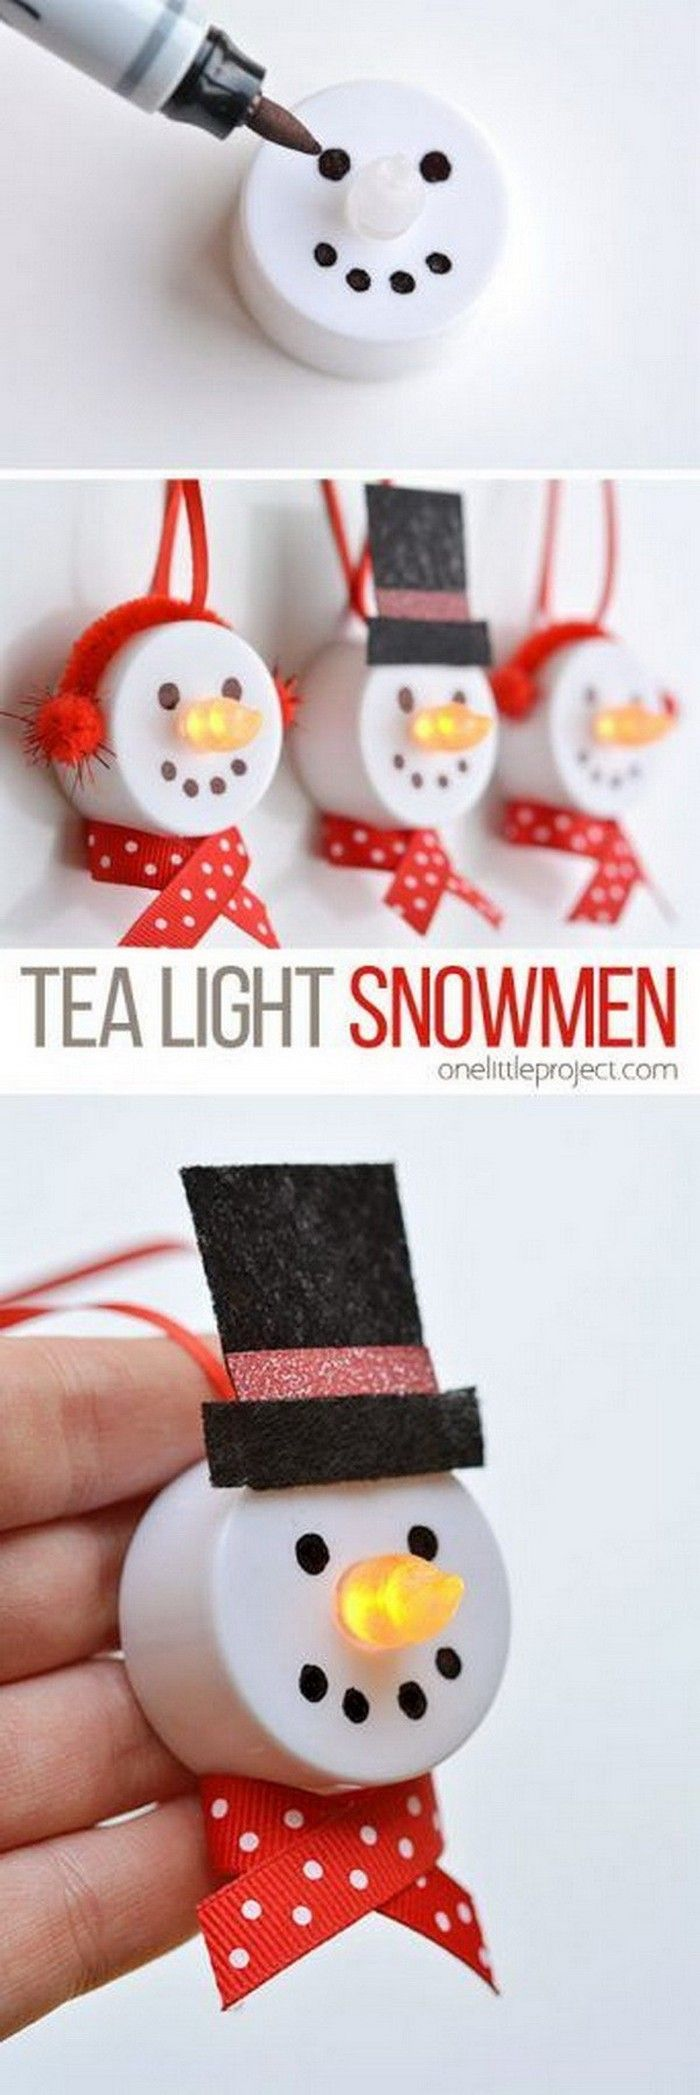 20 Easy DIY Christmas Crafts To Try